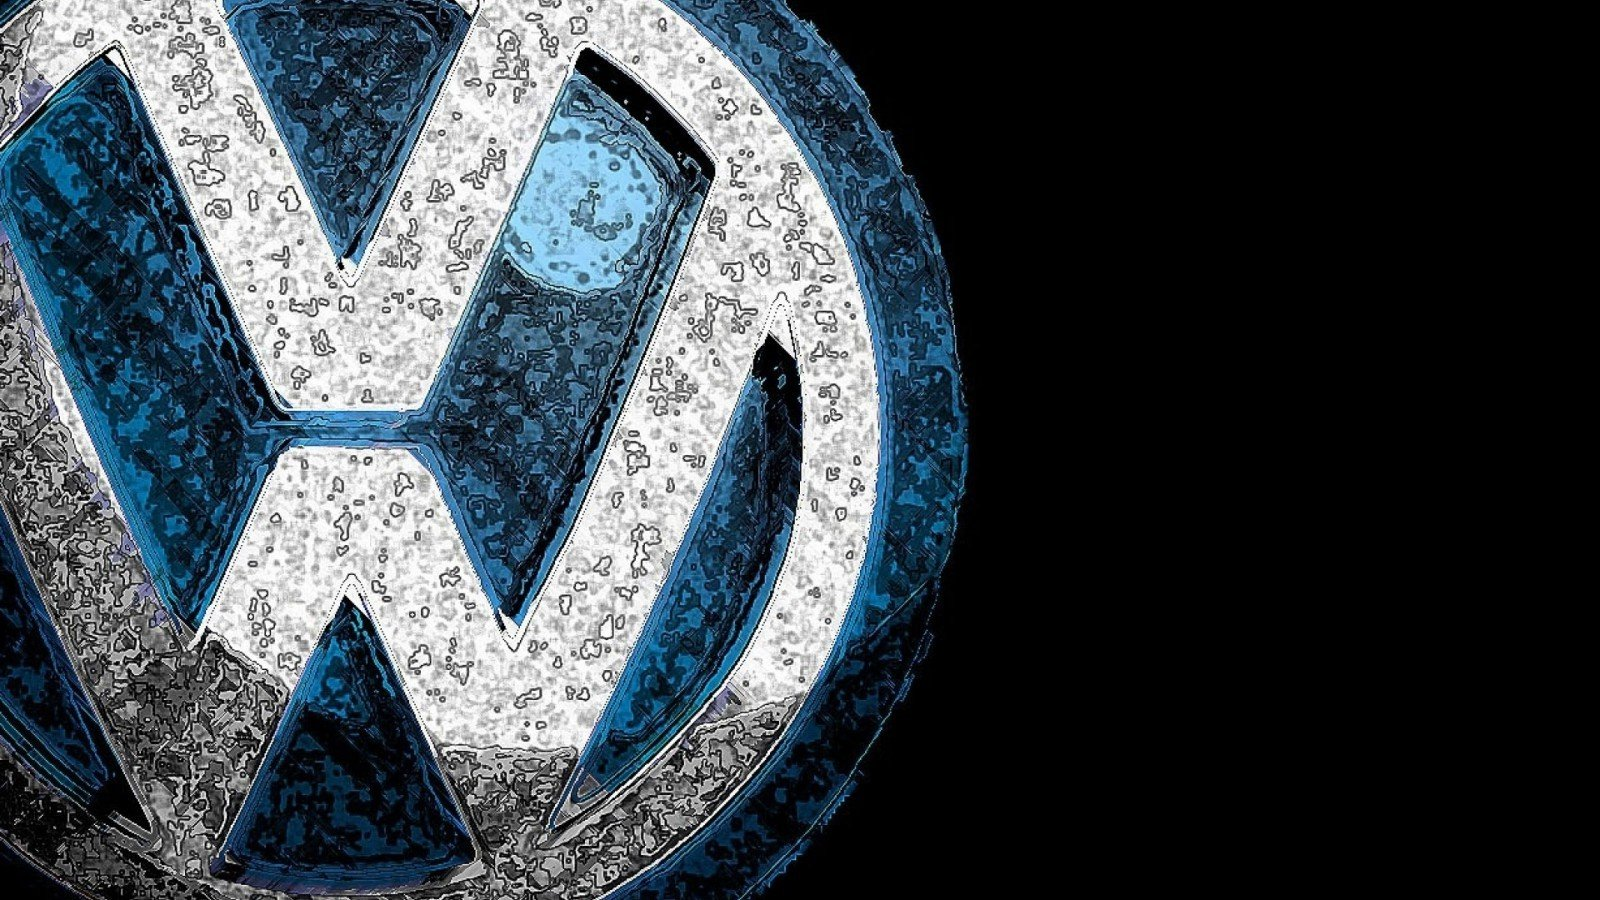 HD VW 4k Wallpaper for Iphone